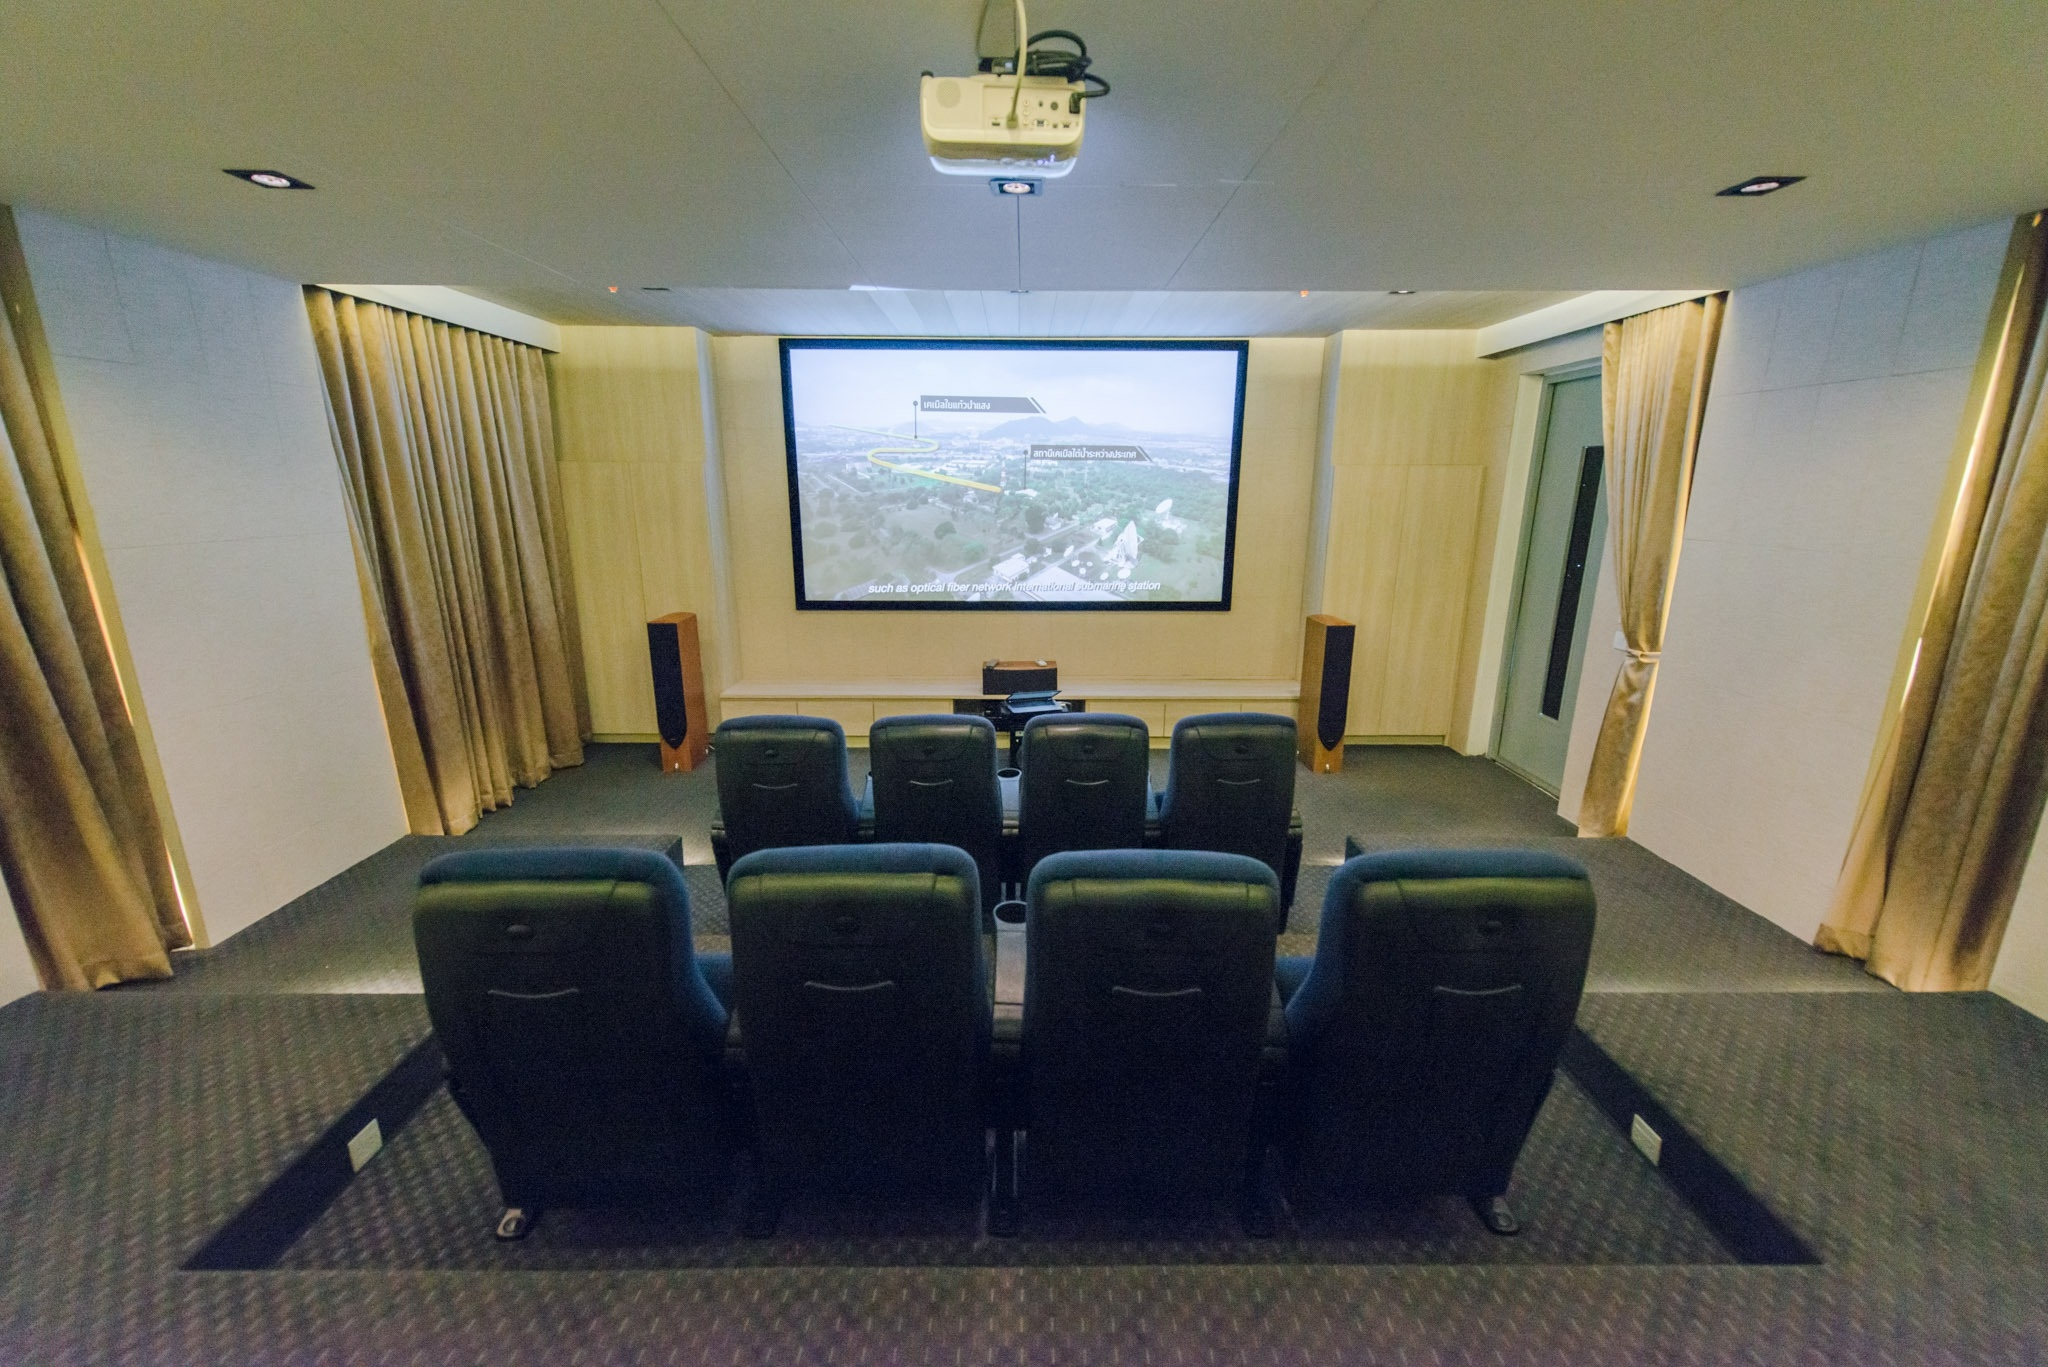 Room Theater